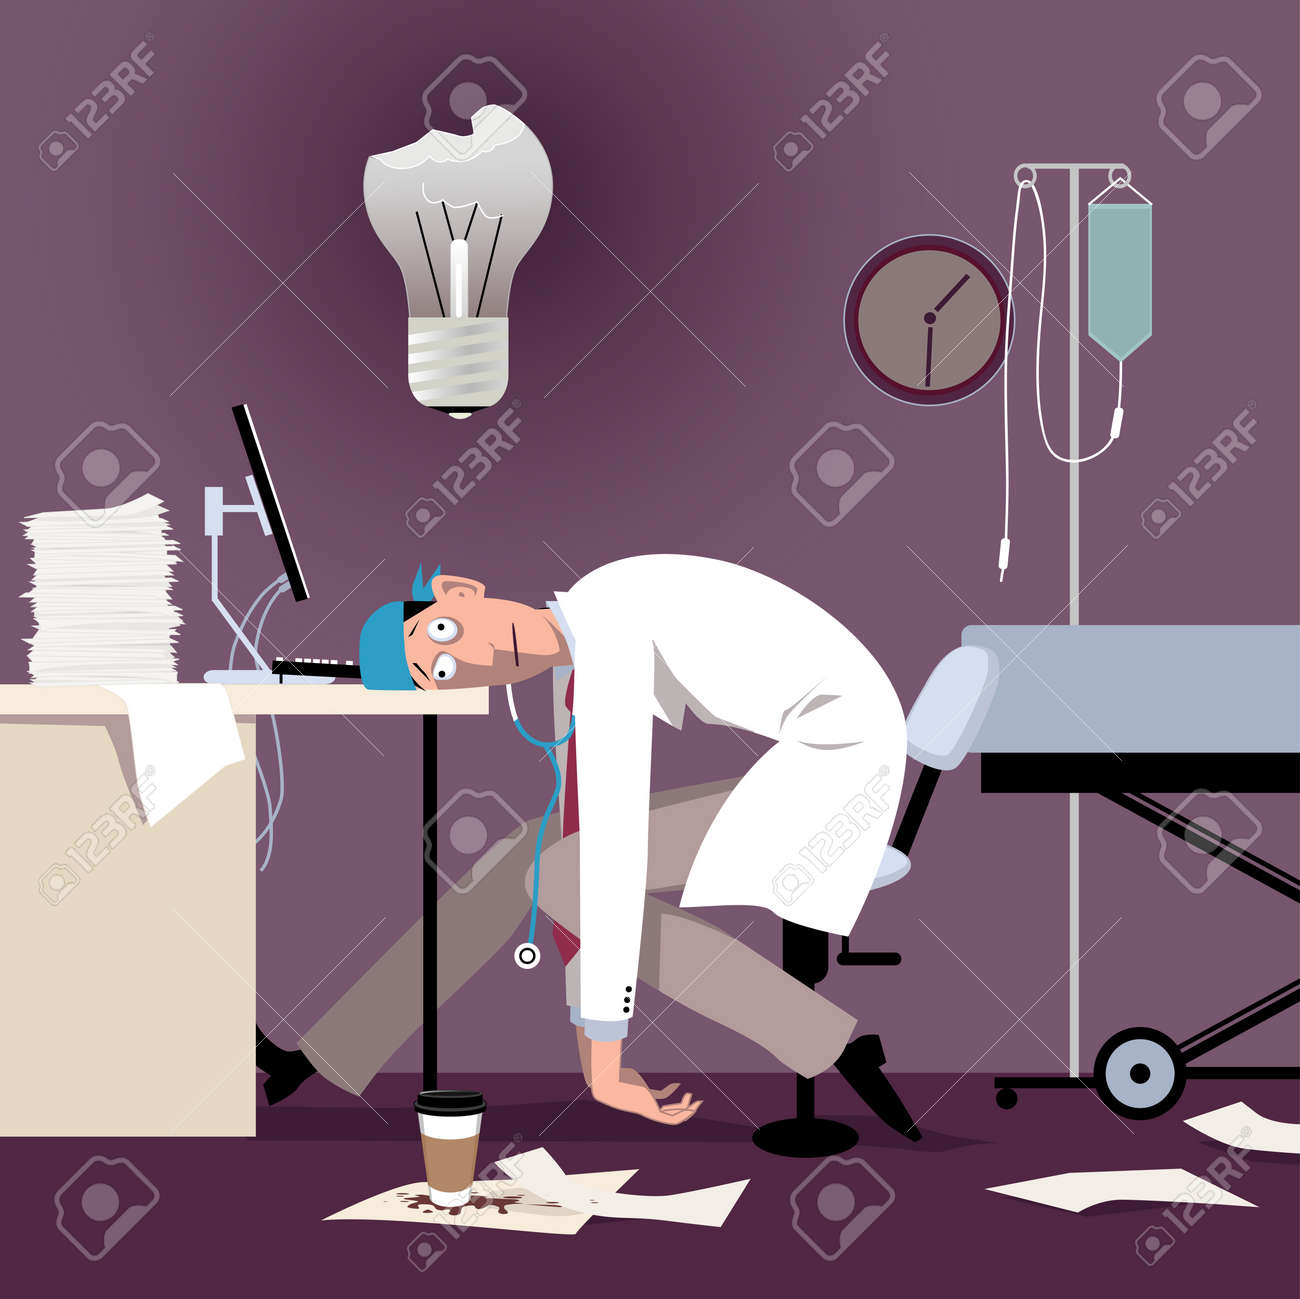 Exhausted overworked doctor or intern sitting at the desk in a hospital, burned out light bulb above his head - 111584064